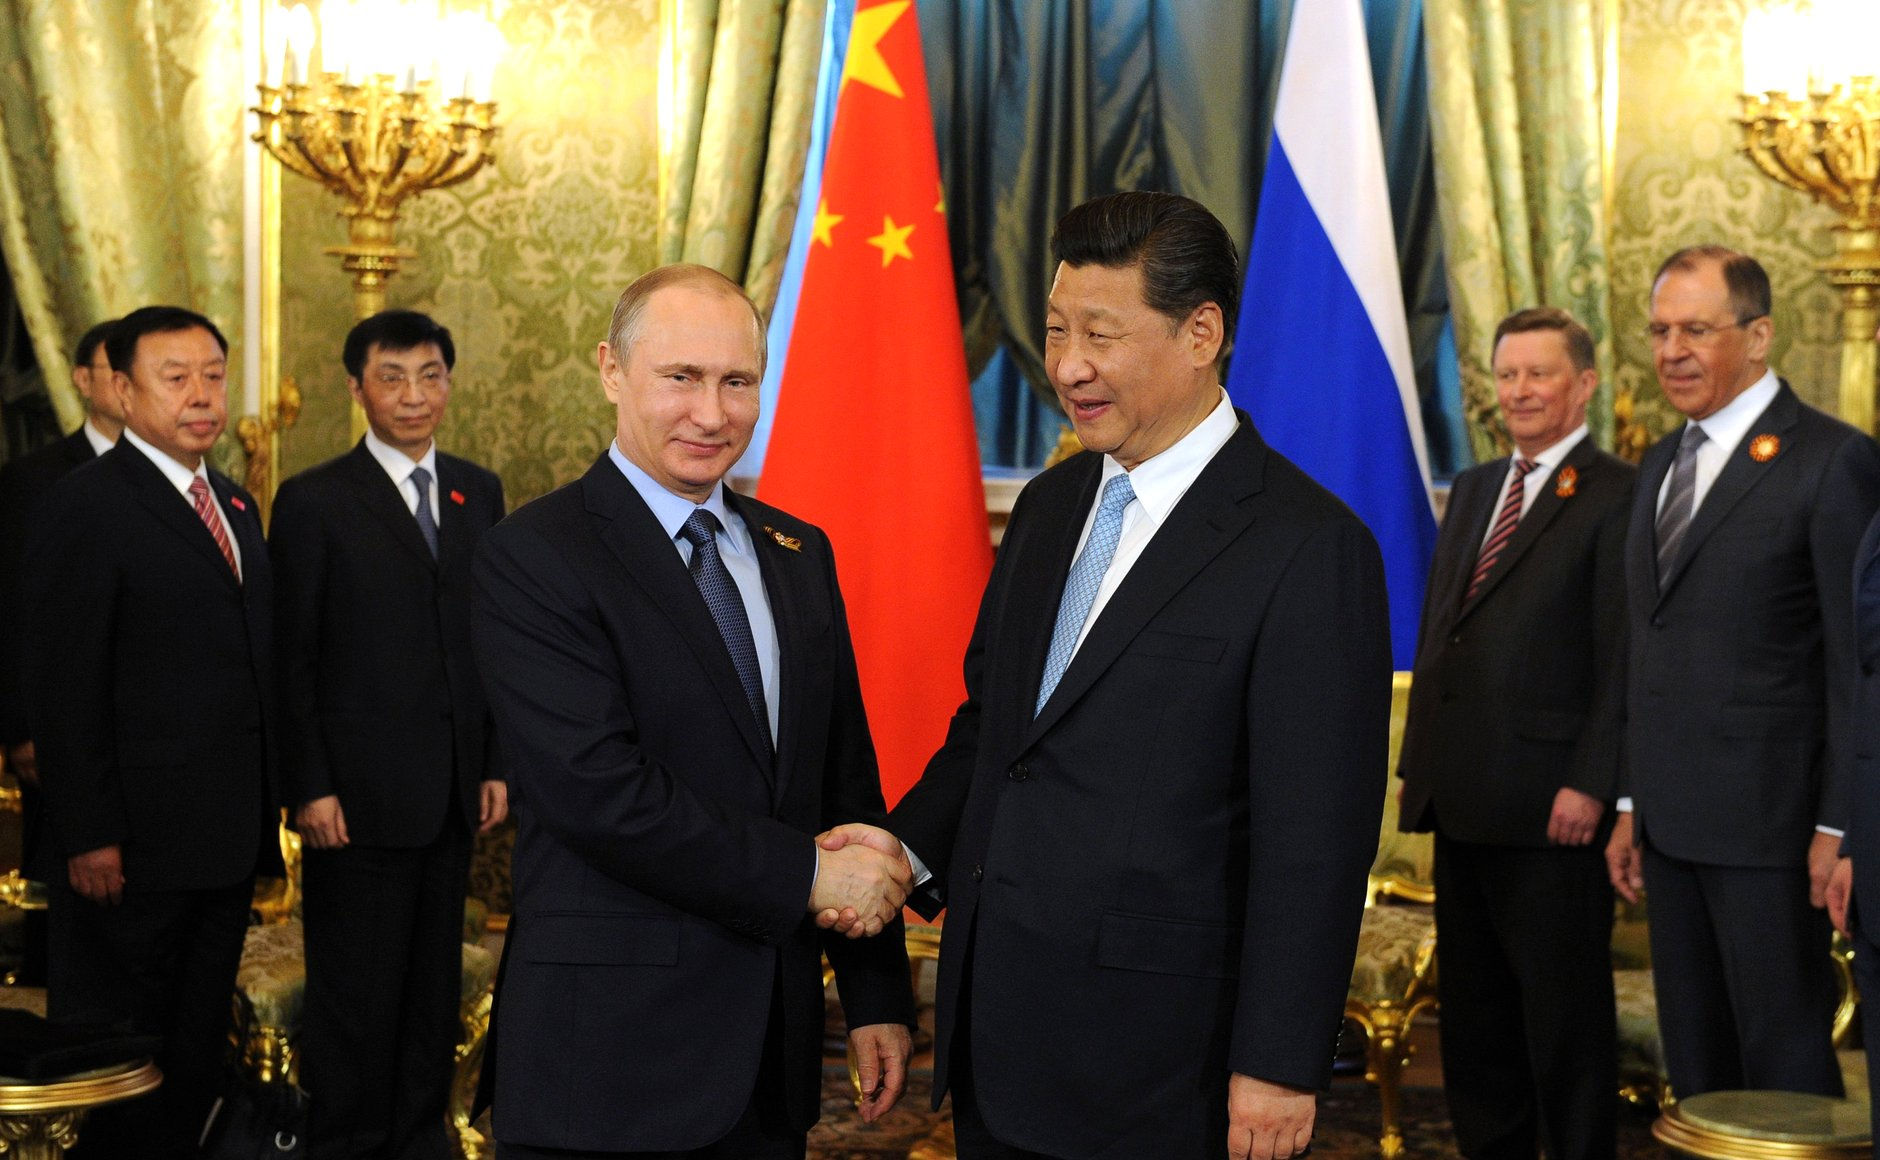 Chinese President Xi Jinping and his Russian counterpart, Vladimir Putin held talks in Moscow on 8 May 2015 [PPIO]